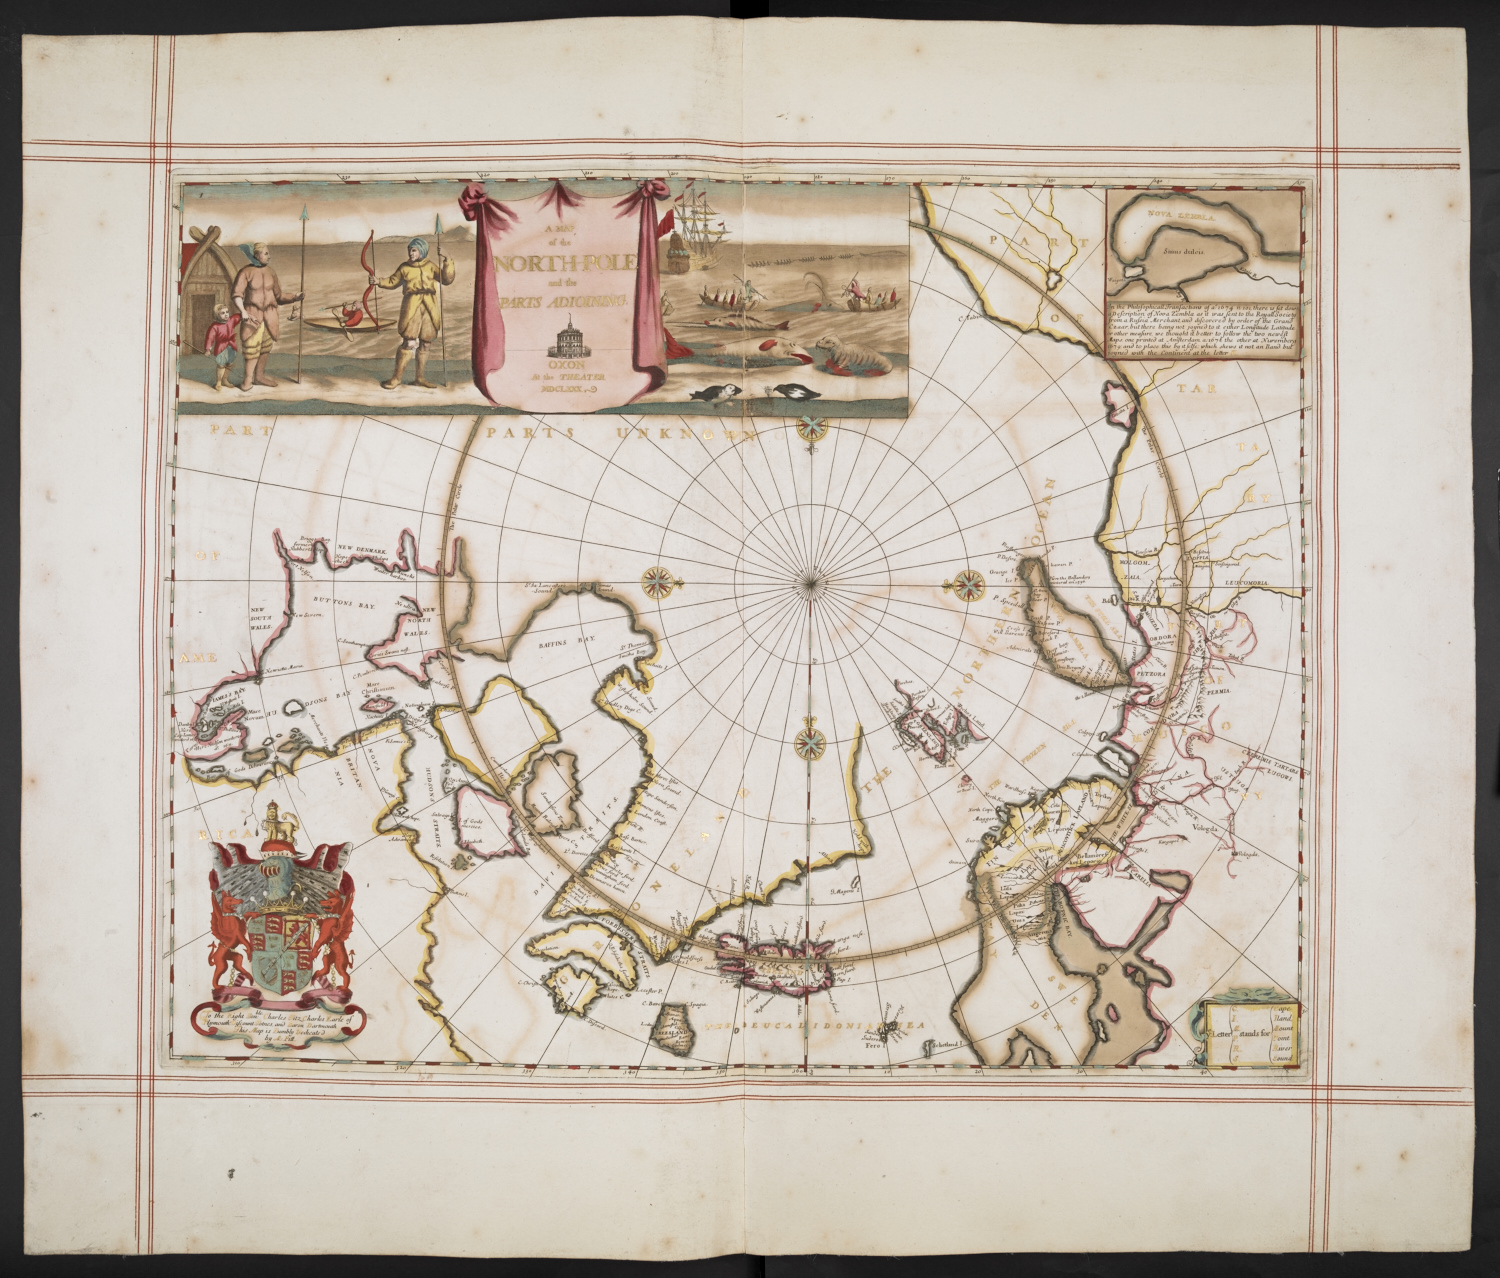 'A map of the North Pole and parts adjoining', Moses Pitt, from The English Atlas (1680) - the personal atlas of King Charles II. Photograph courtsey of the British Library.